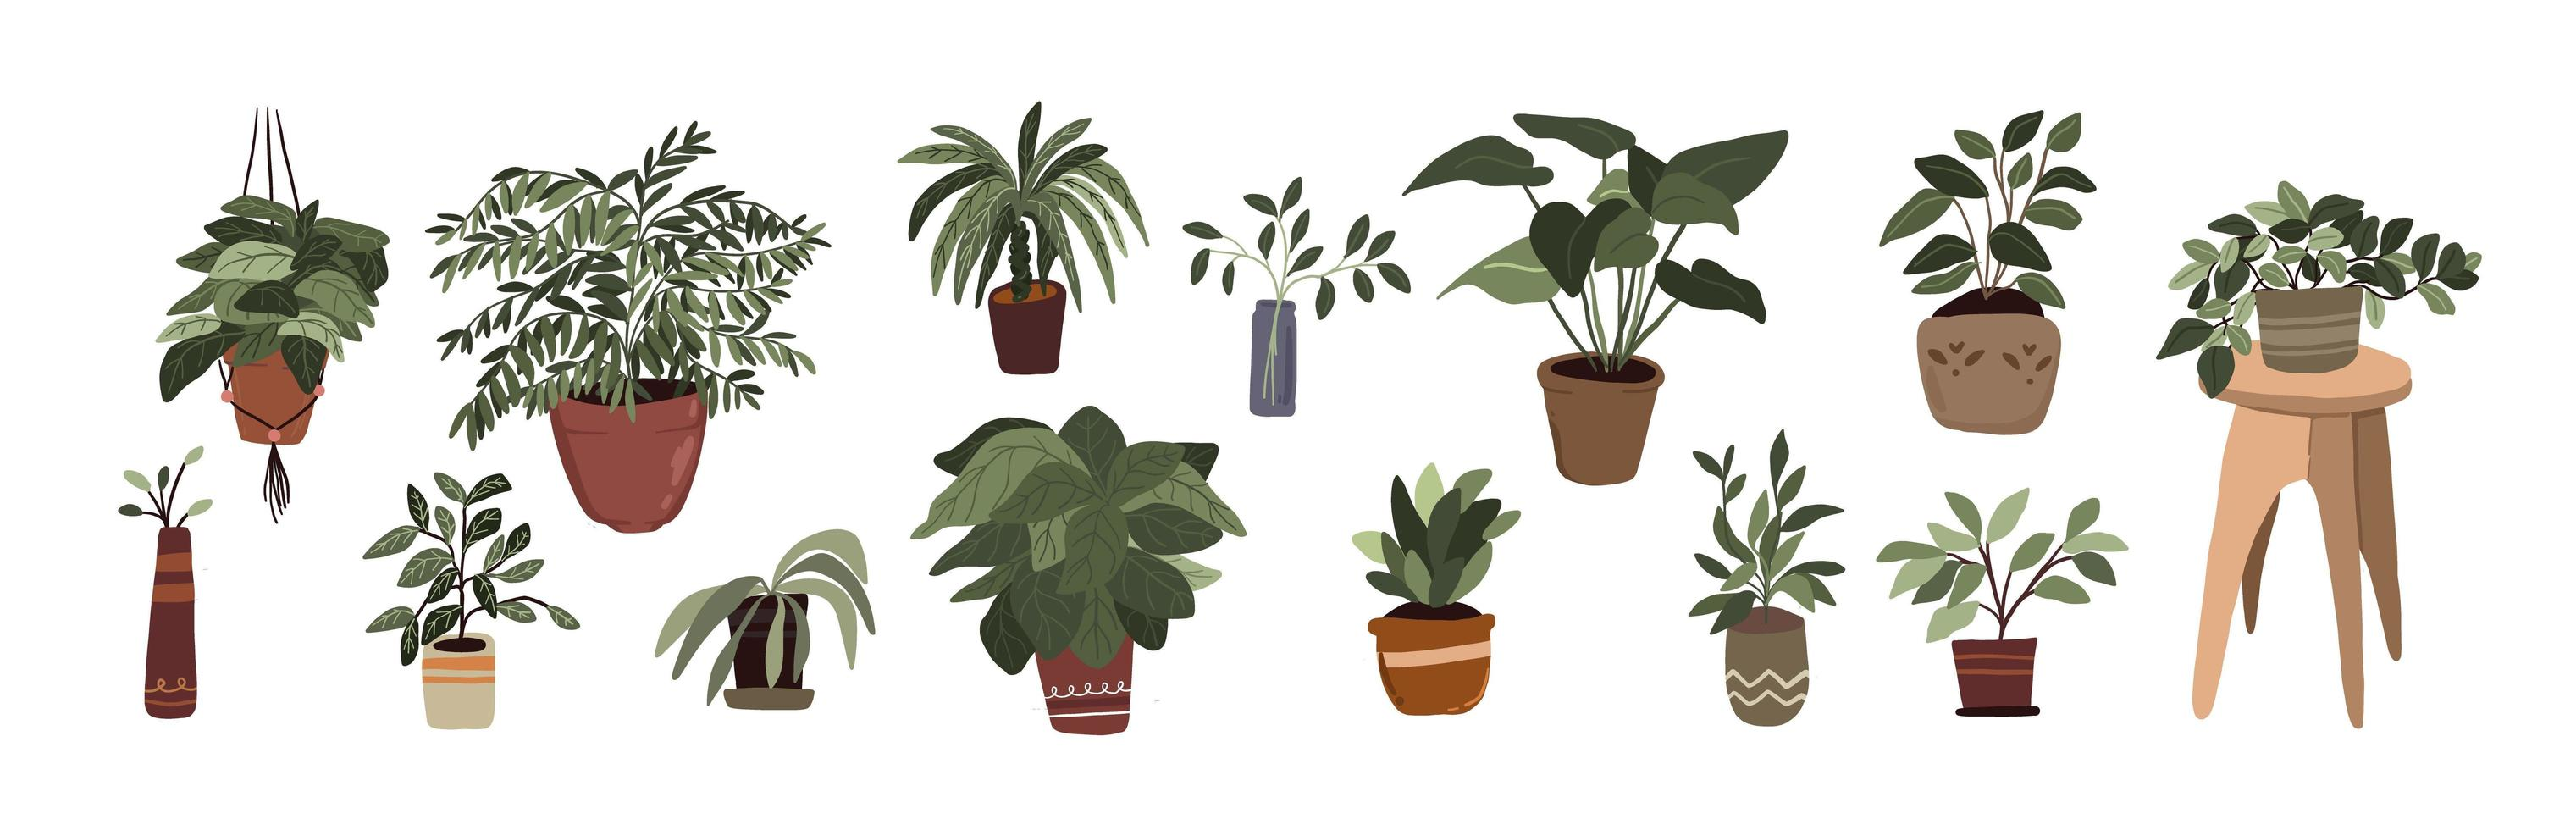 interior potted plants decor elements set sticker green thumb for bullet journal vector